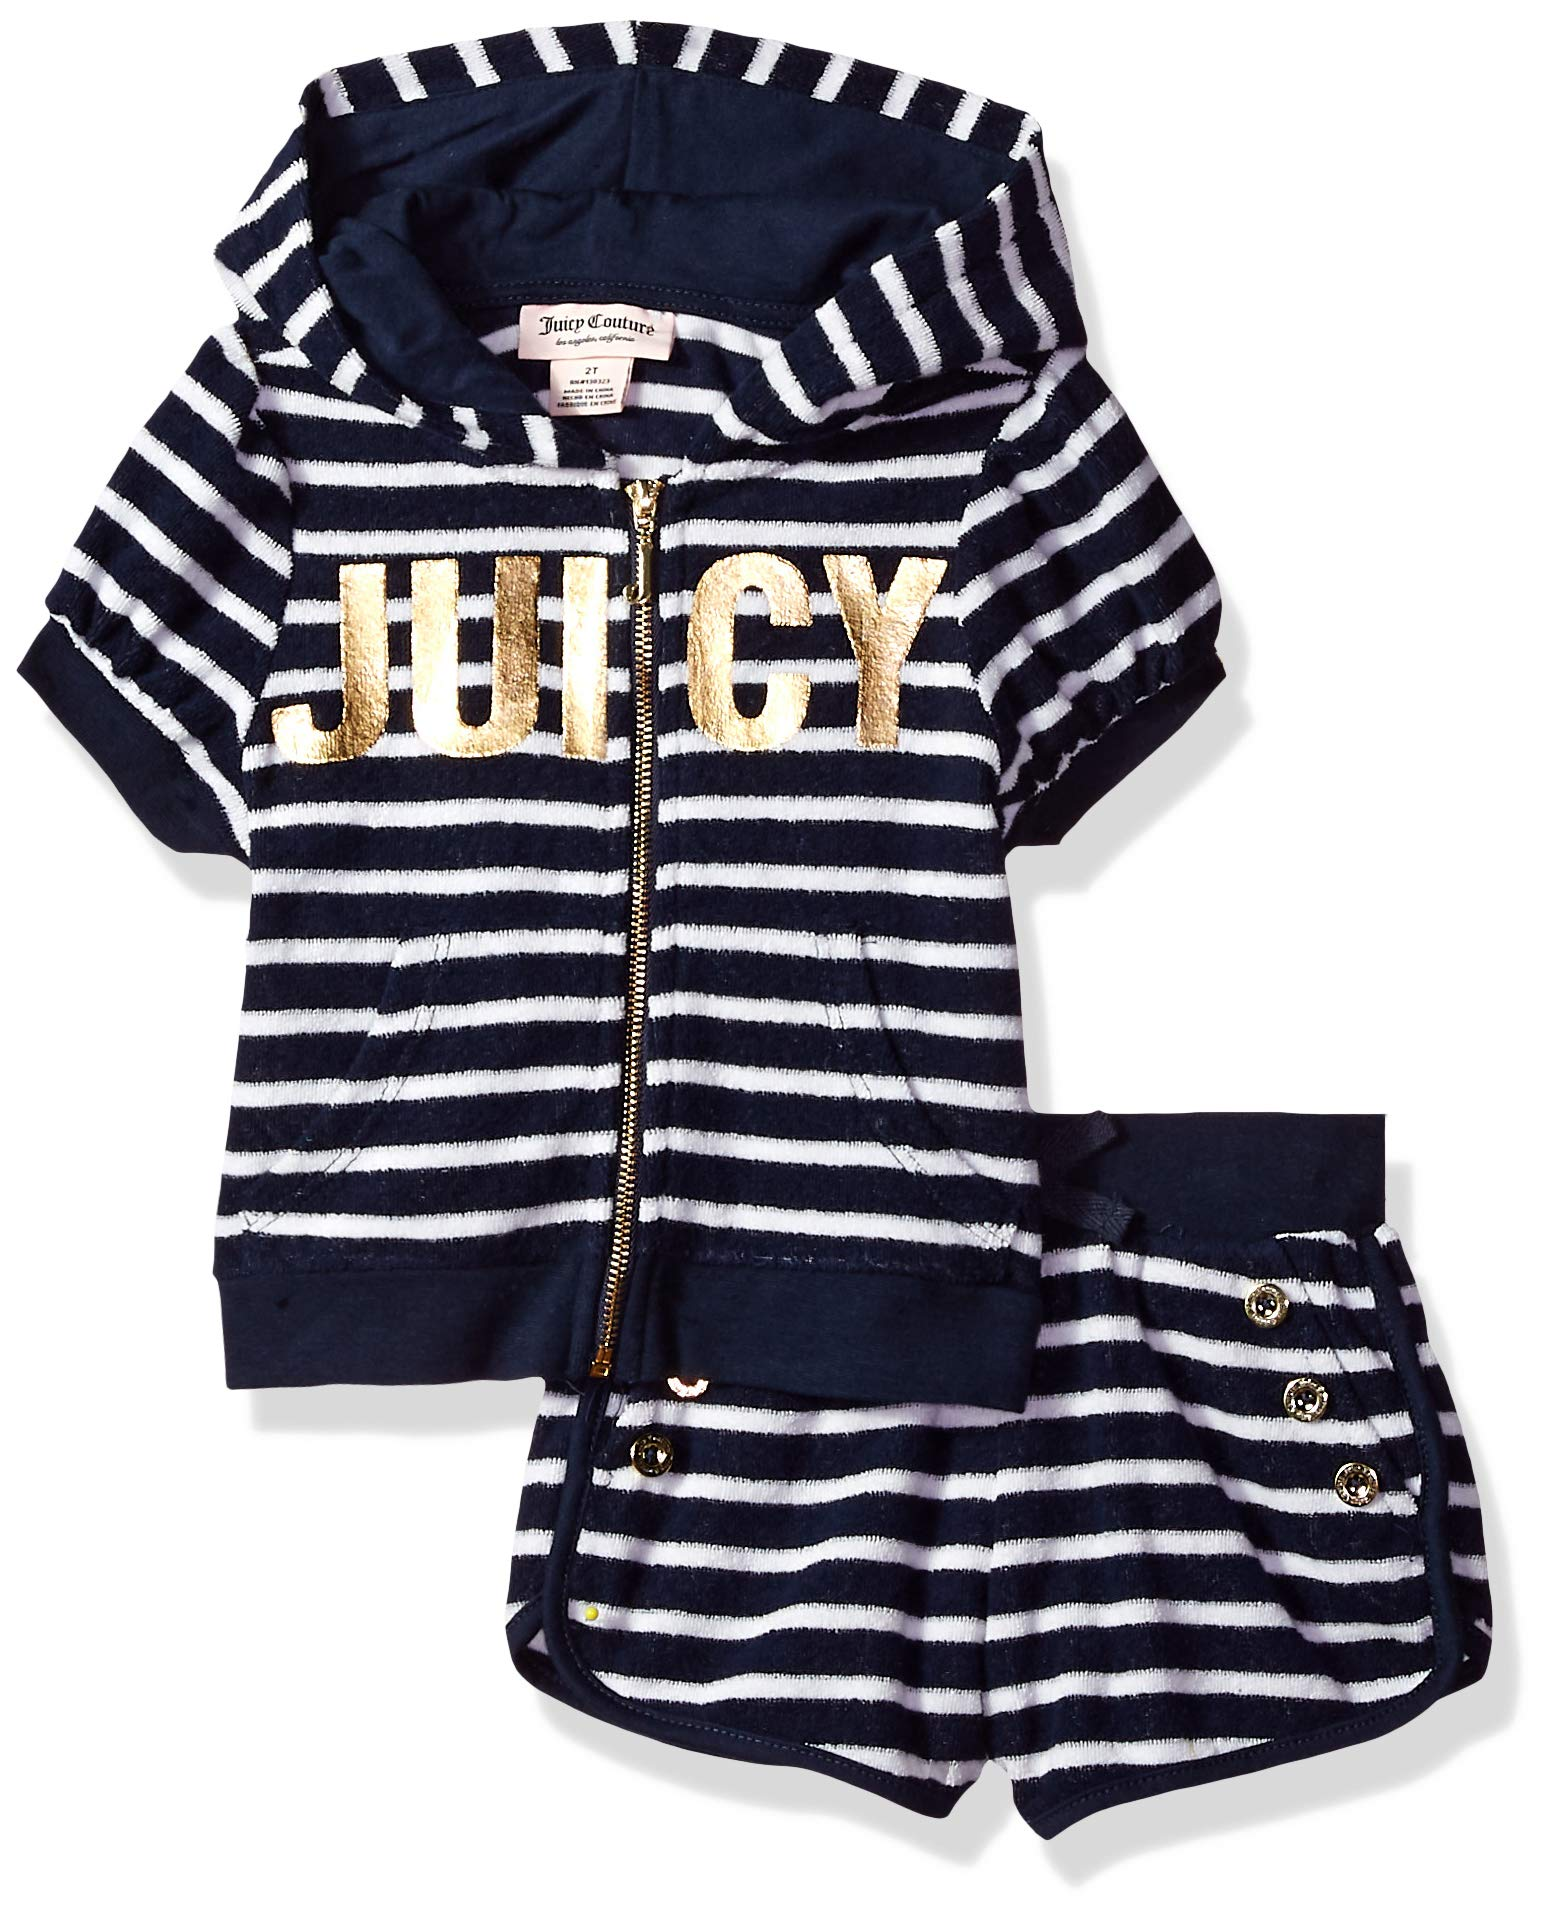 Juicy Couture Girls' Big 2 Pieces Hoody Shorts Set, Navy/White, 8/10 by Juicy Couture (Image #1)